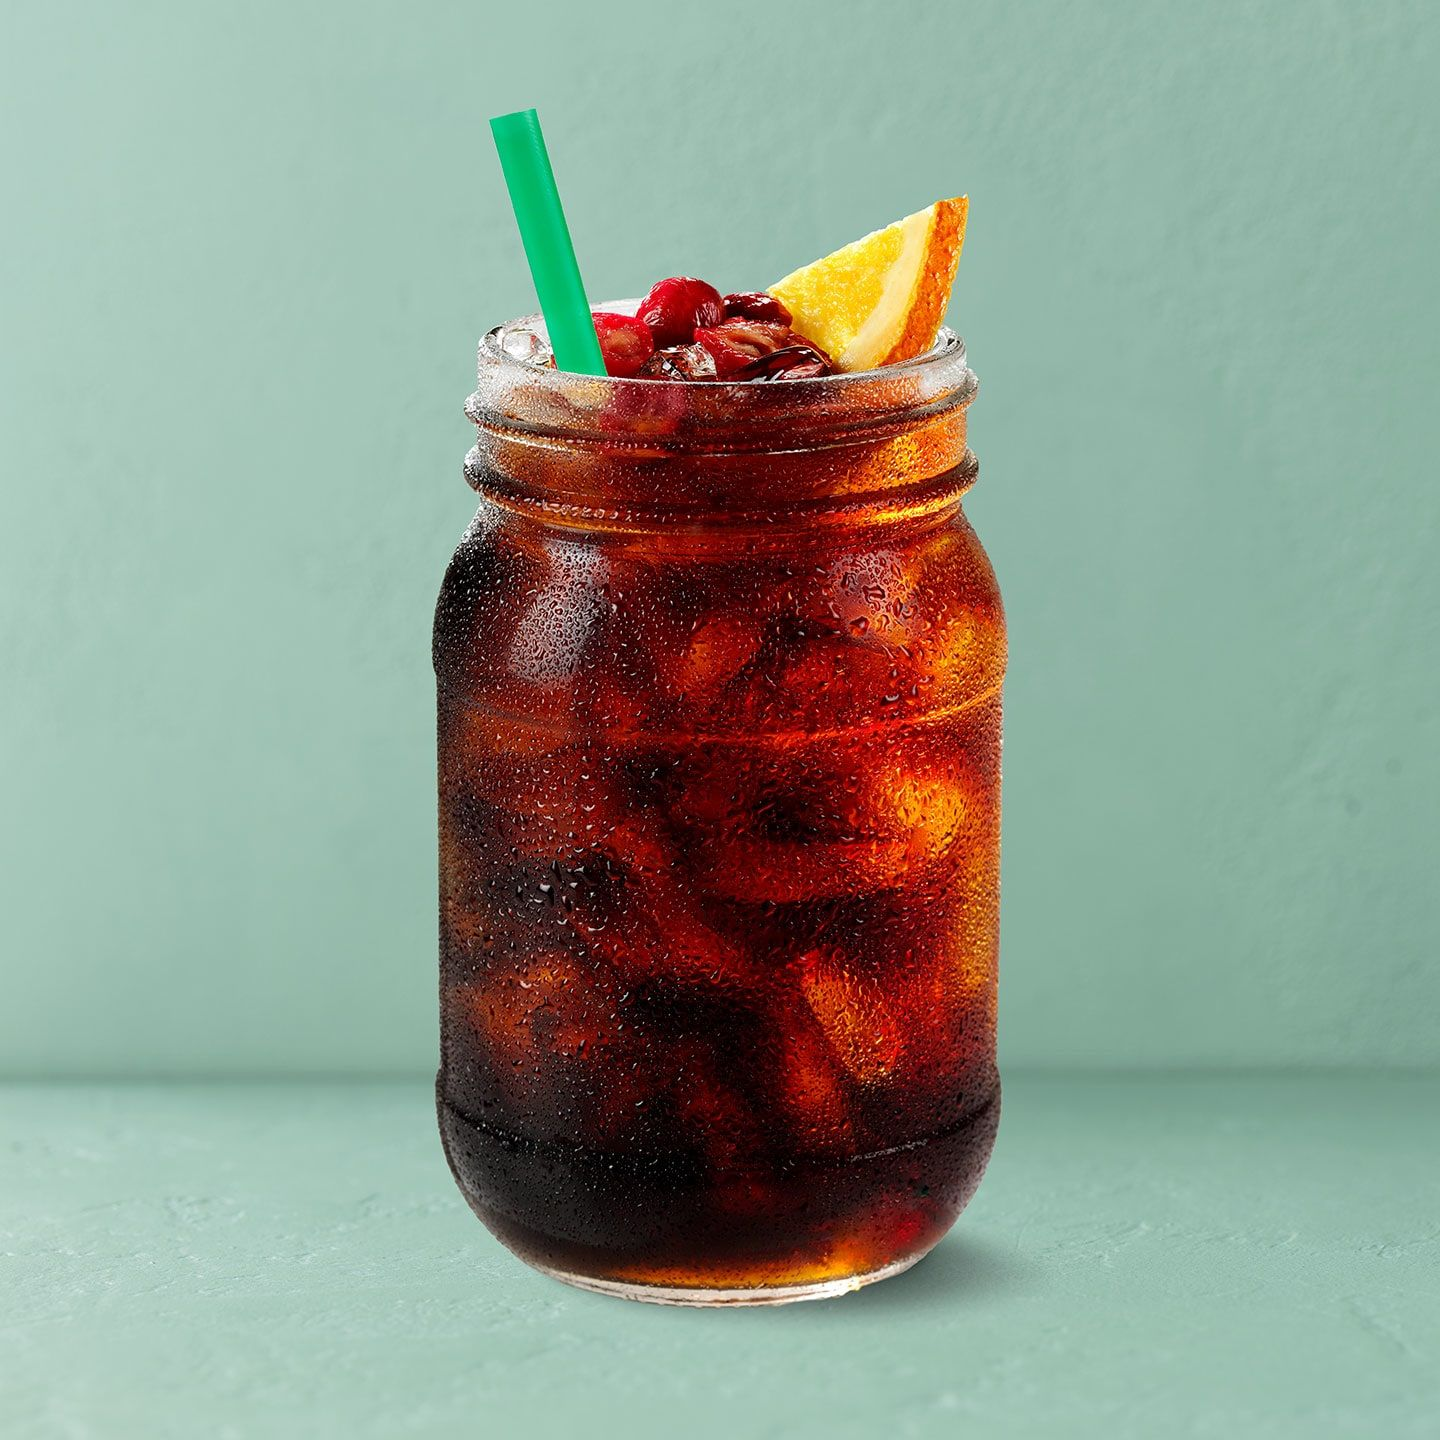 Starbucks Coffee Company (With images) Holiday drinks